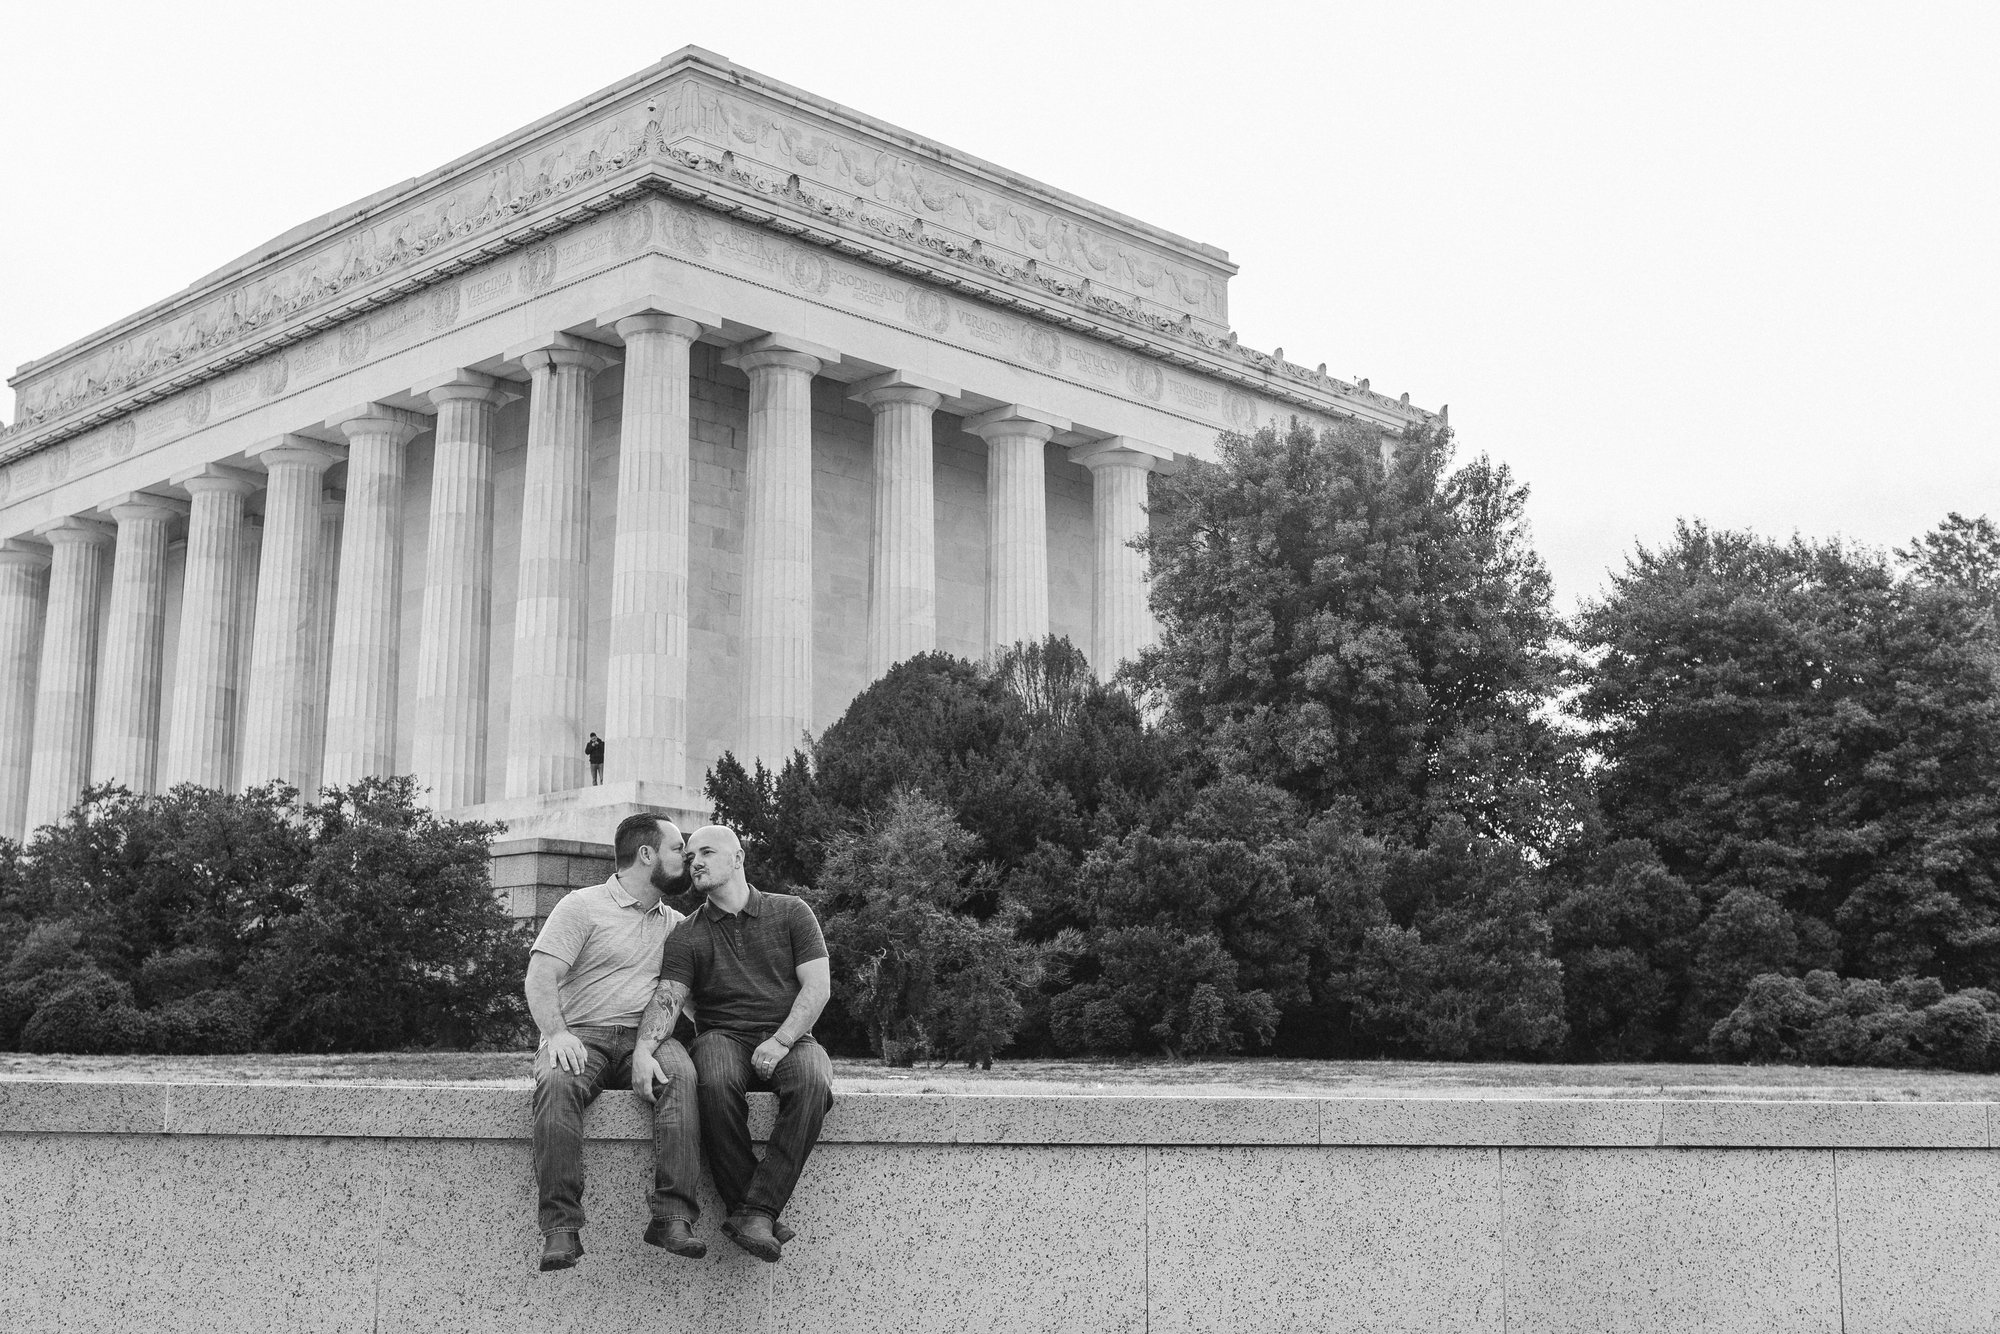 Washington, DC Same Sex Engagement Shoot at the Lincoln Memorial in the background.